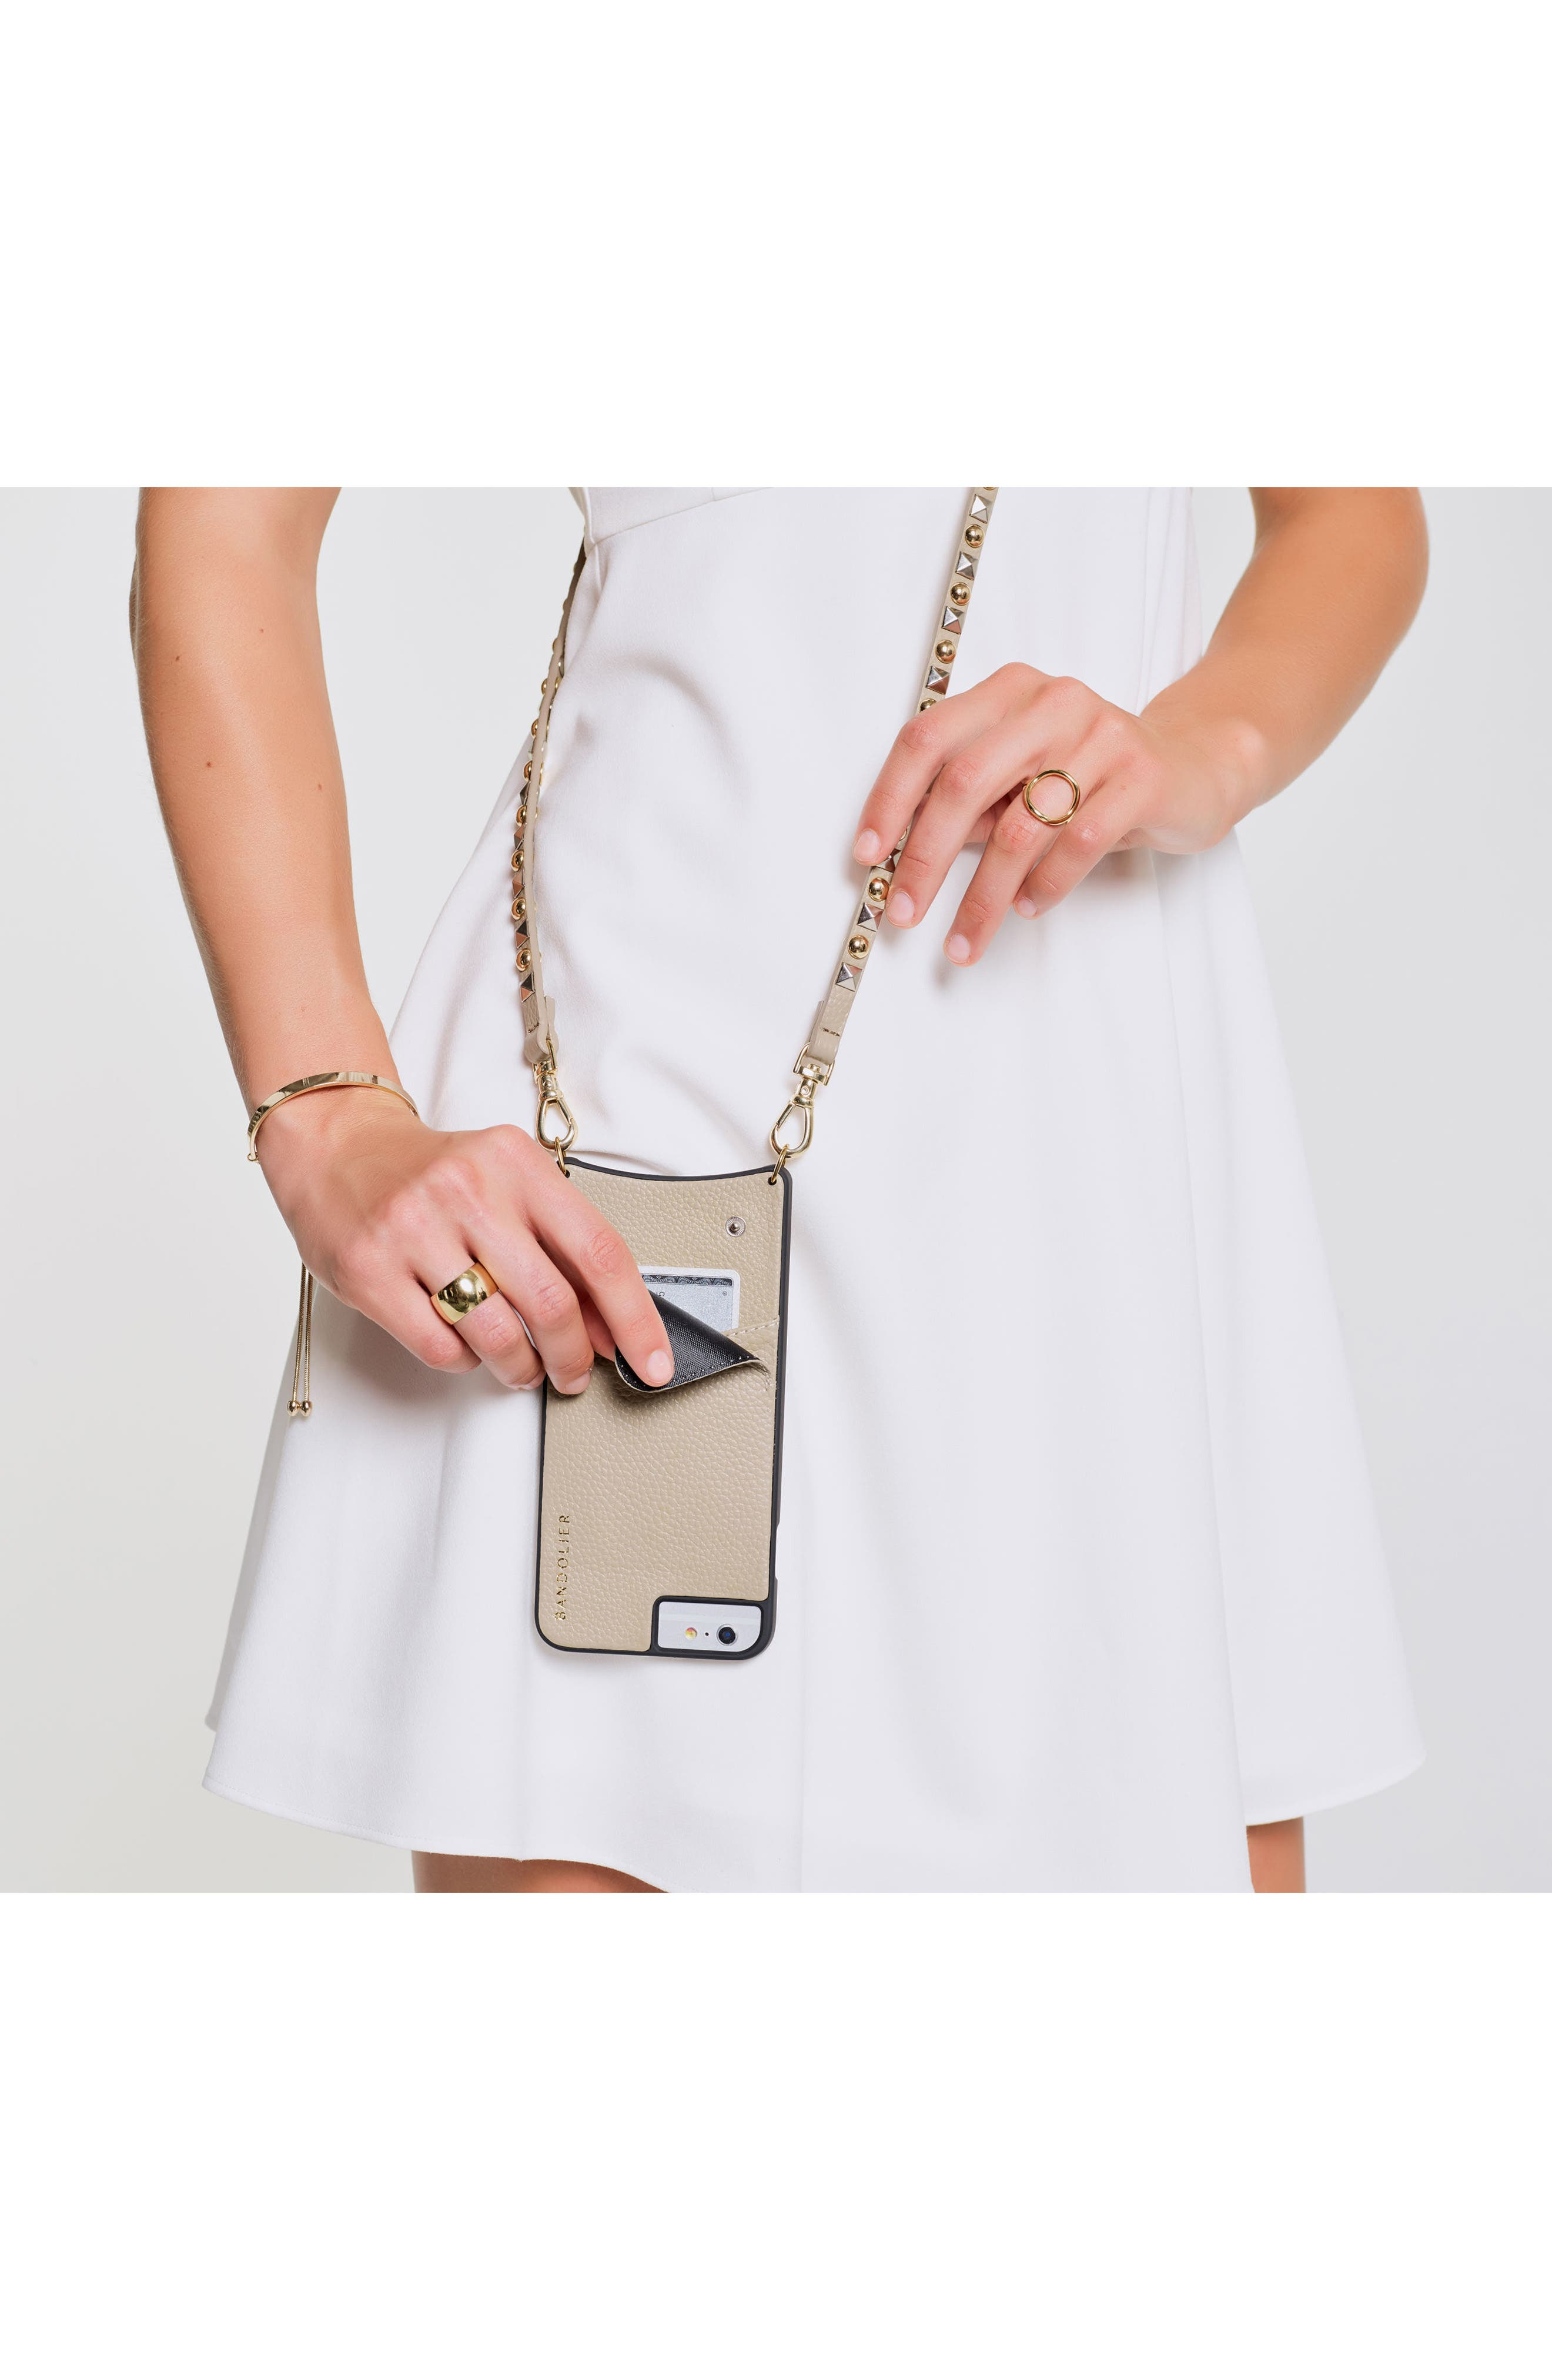 Stella iPhone 6/7/8 & 6/7/8 Plus Leather Crossbody Case,                             Alternate thumbnail 9, color,                             Pebble/ Gold/ Silver